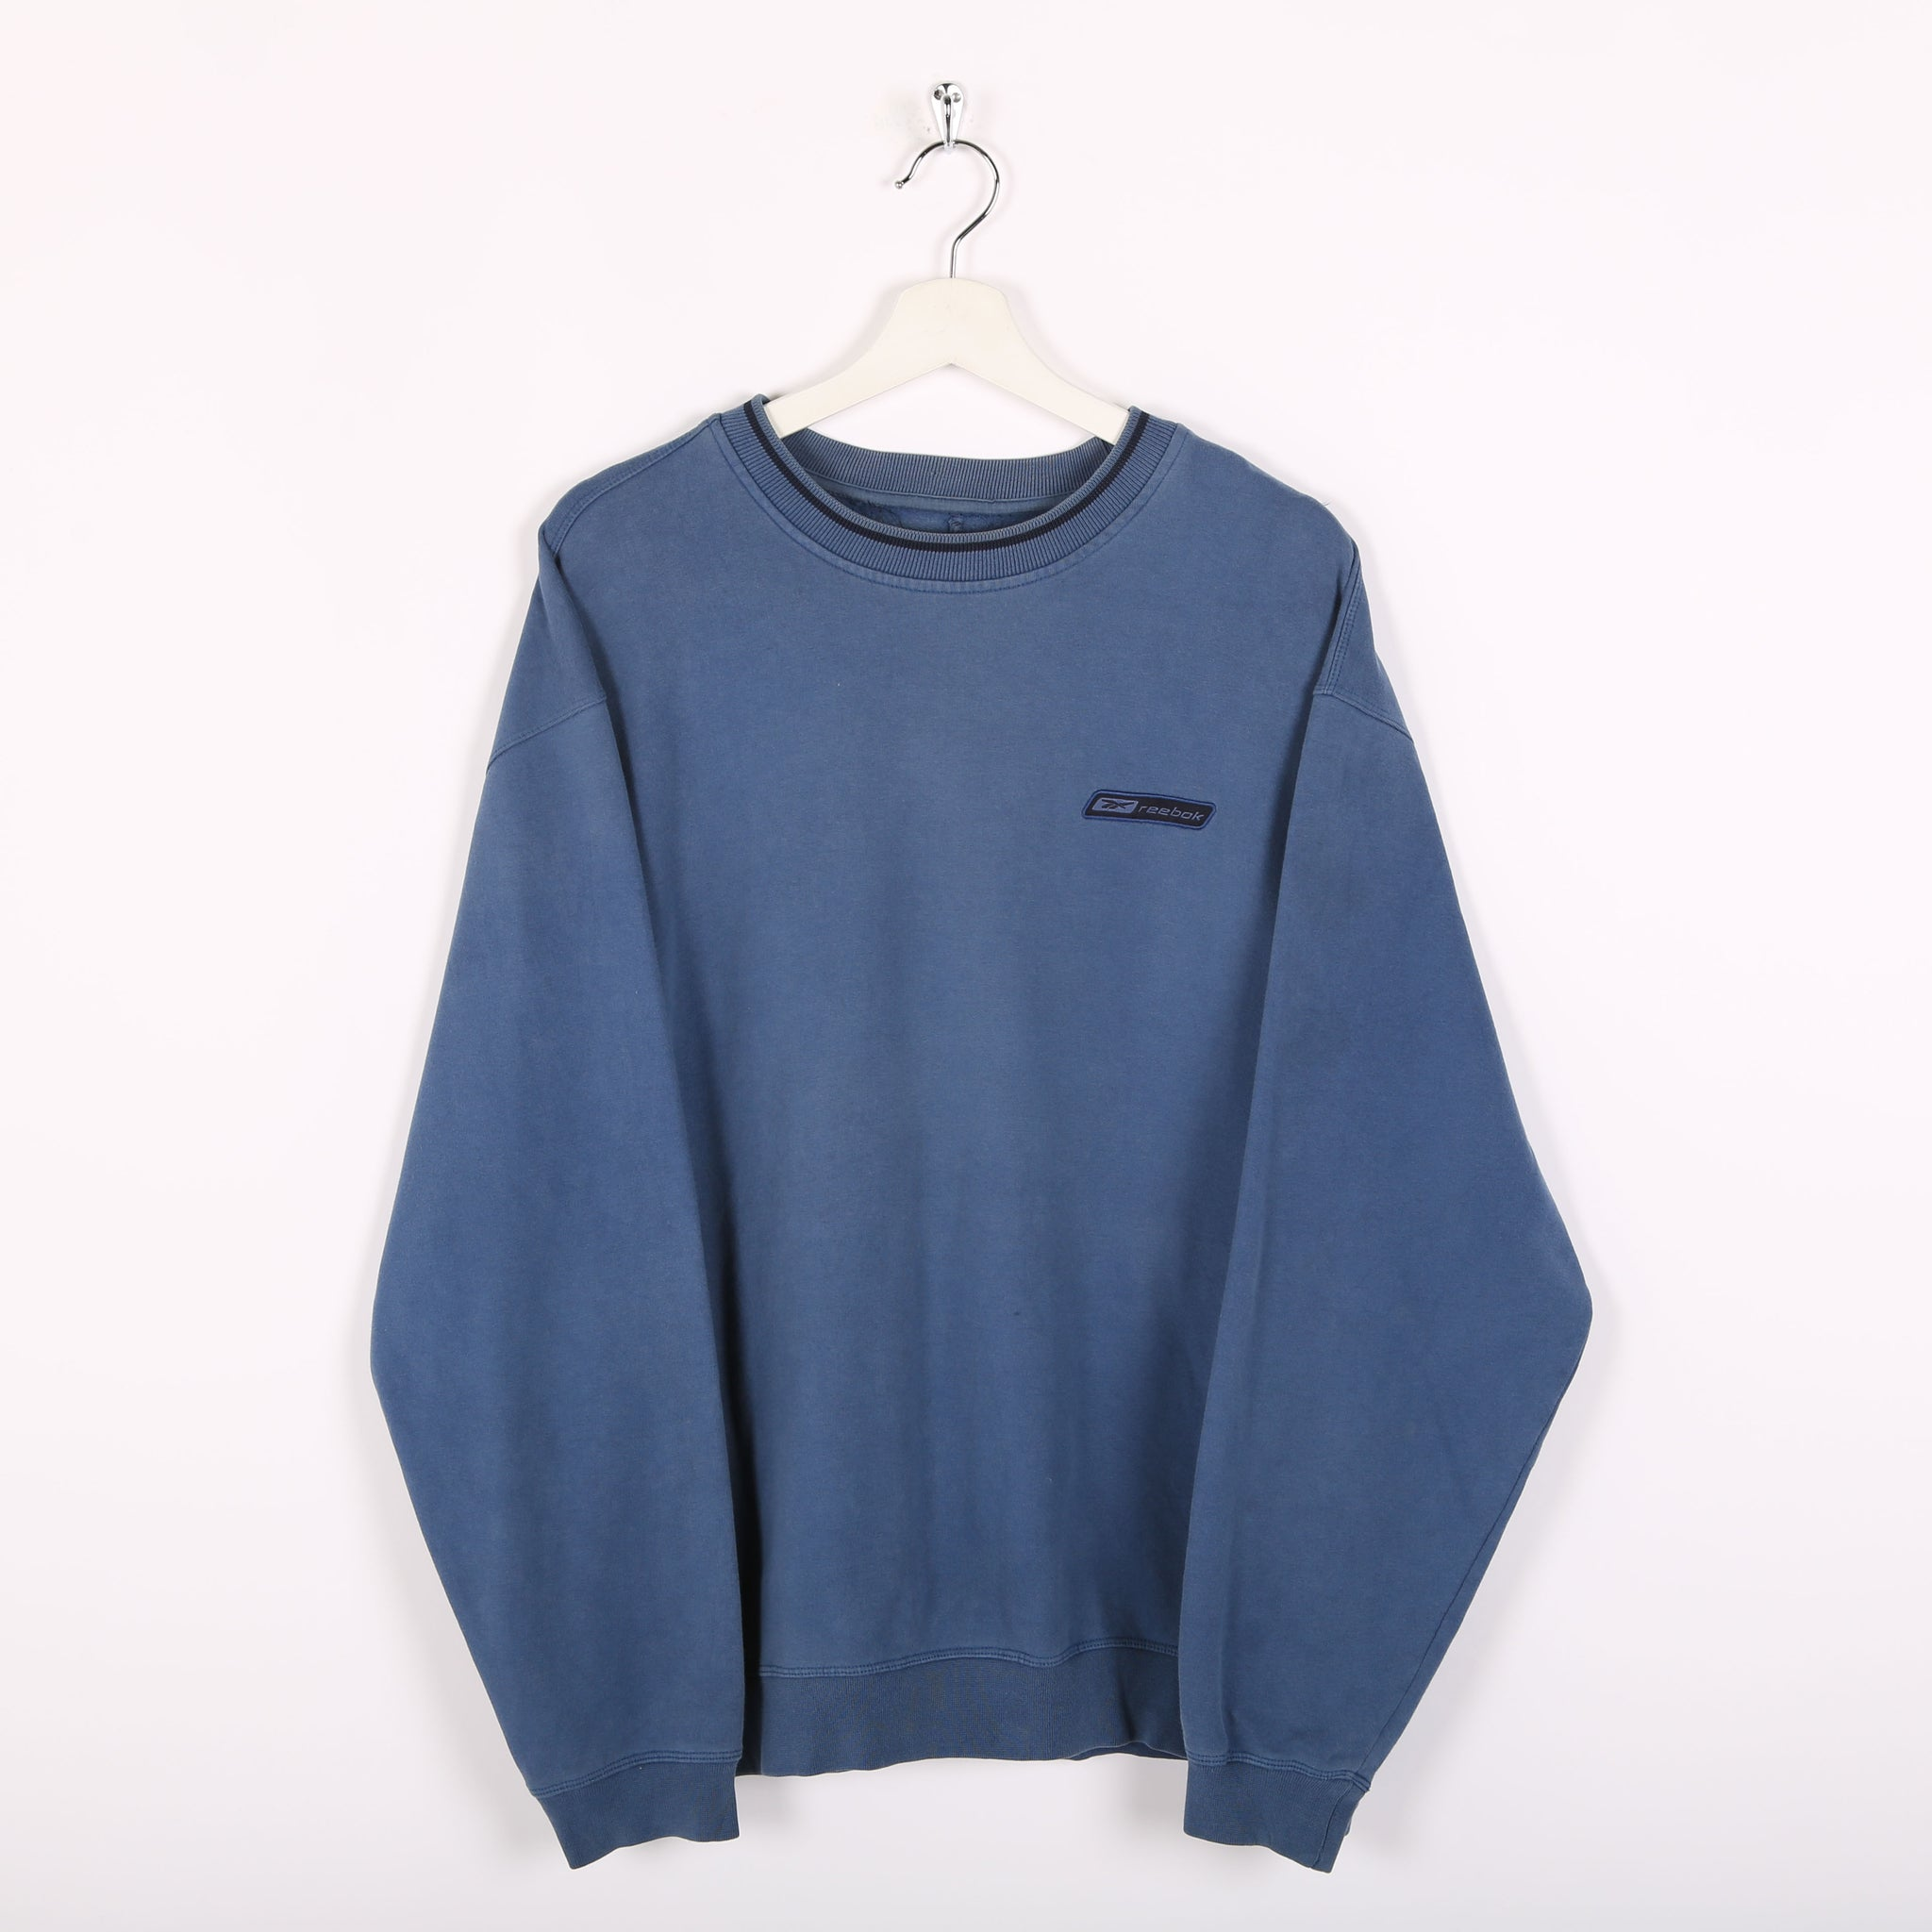 Reebok Sweatshirt Blue Medium